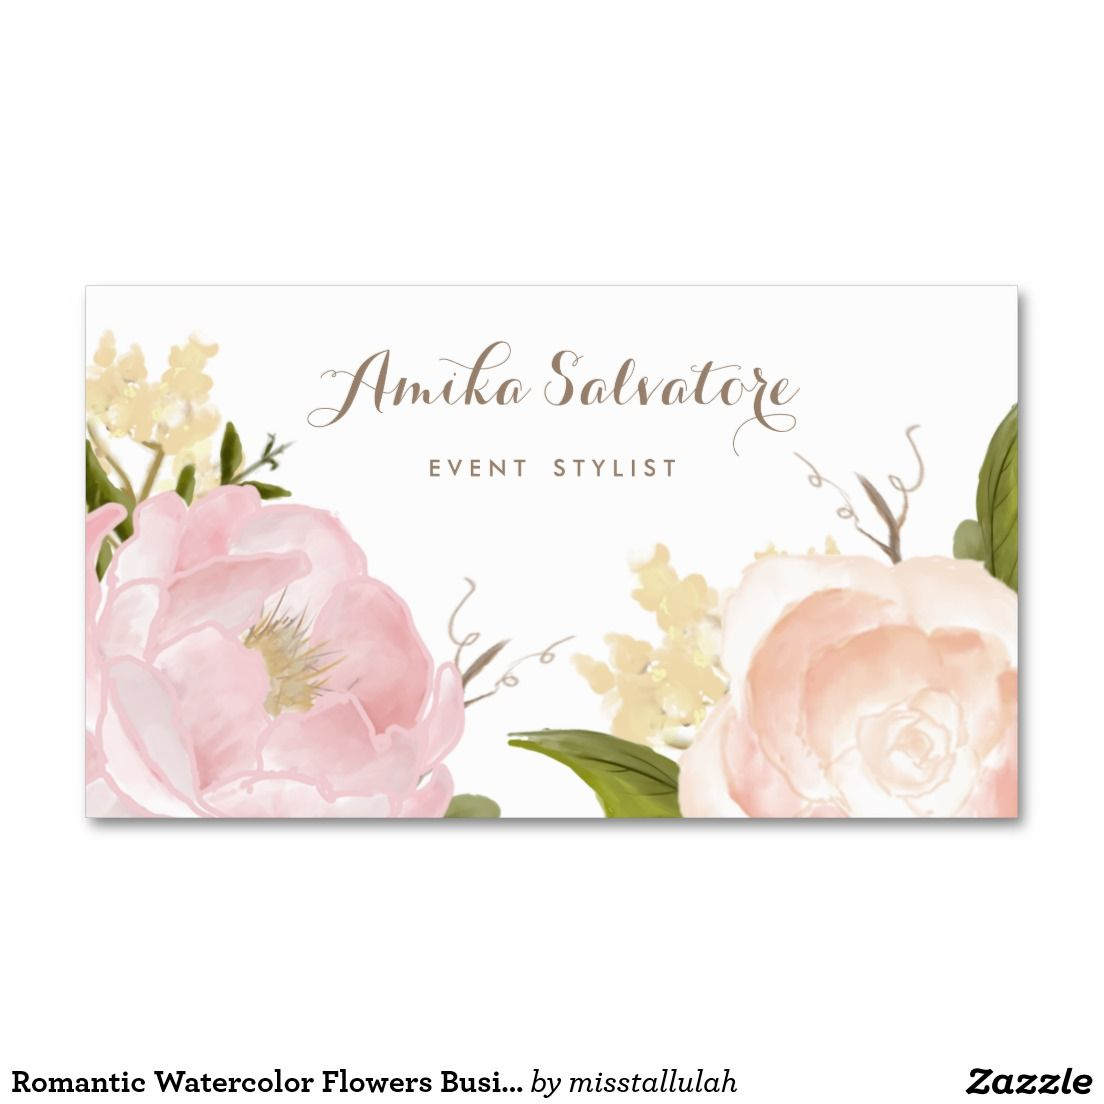 Romantic Watercolor Flowers Business Card | Chic Business Cards for ...